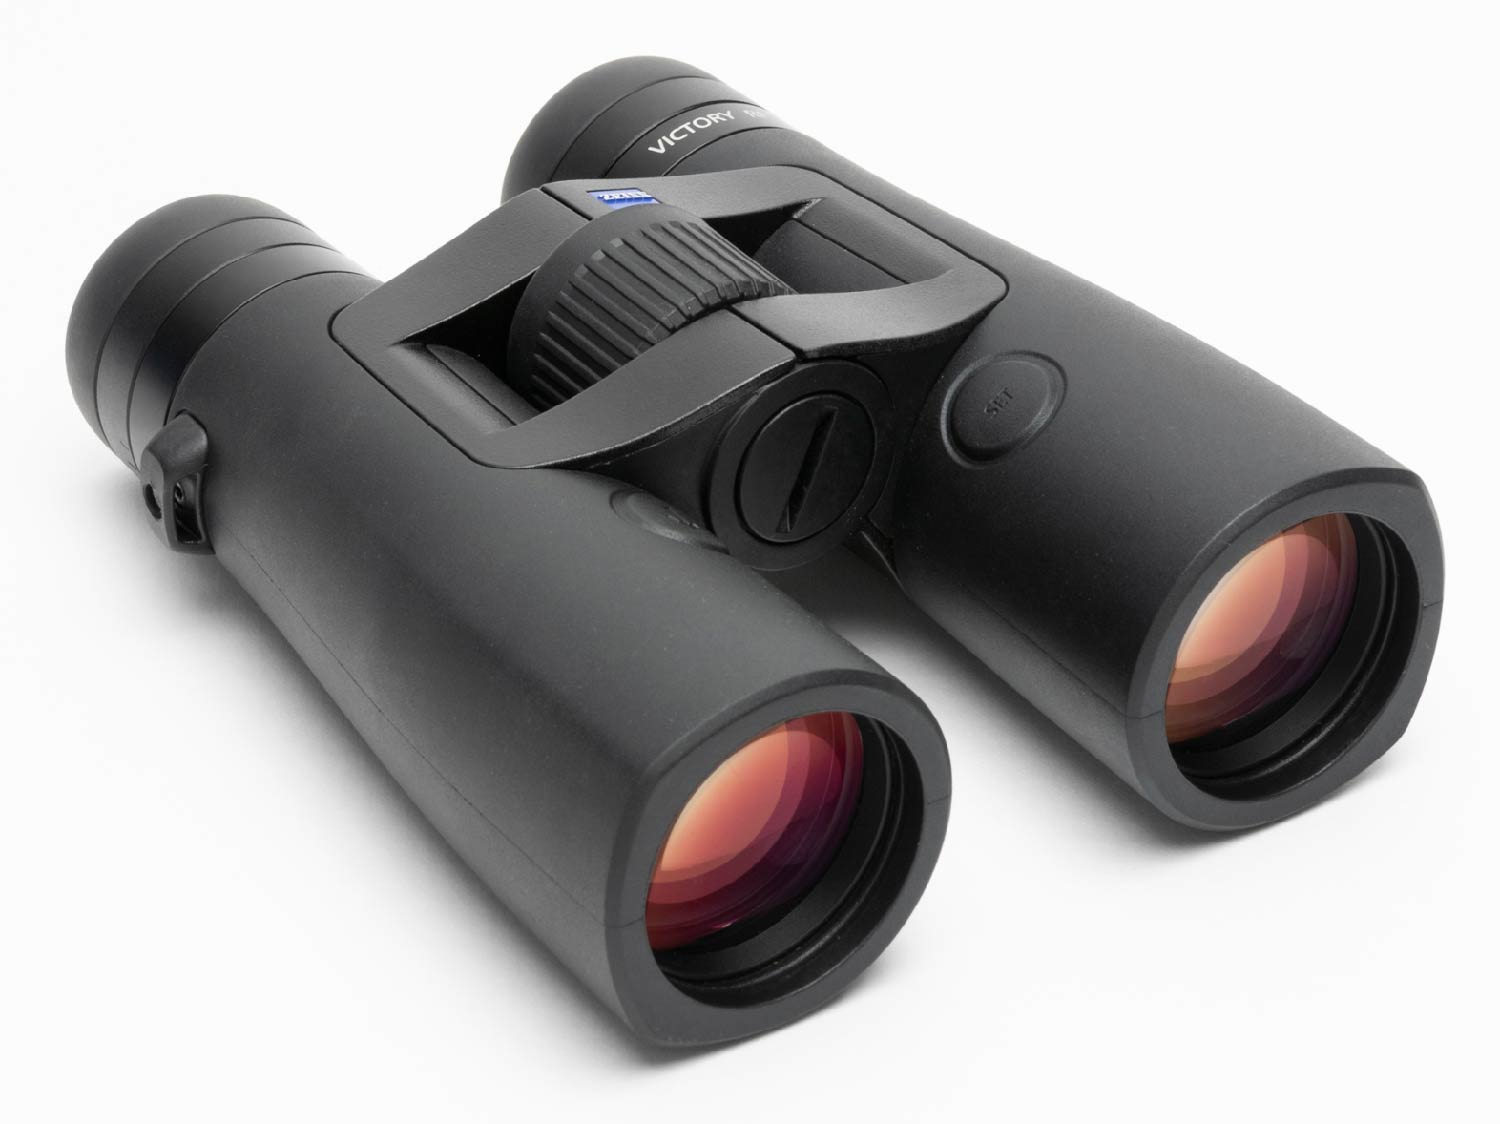 Zeiss Victory RF • 10x42 • $3,300